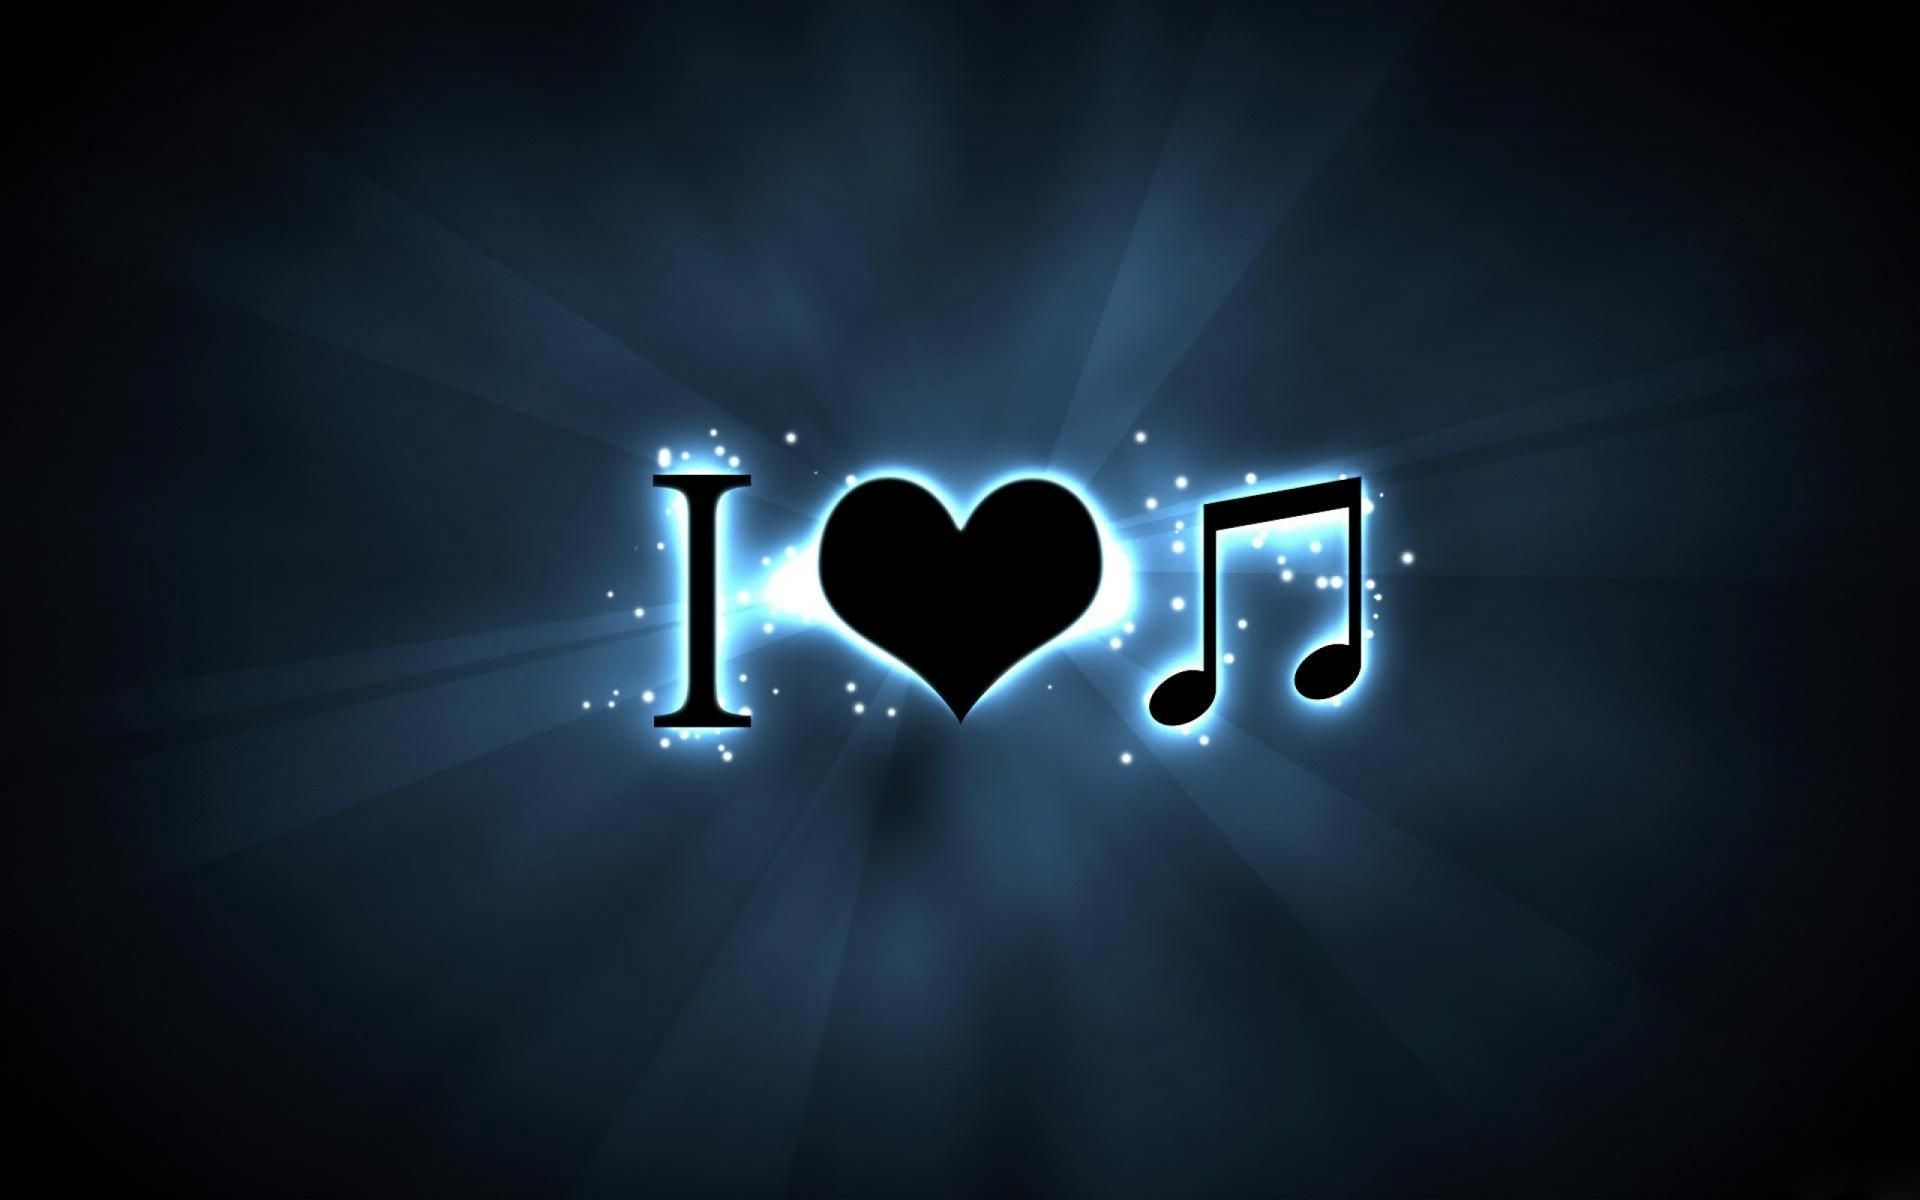 Best Music HD Wallpapers 8 | Best Music HD Wallpapers | Pinterest ...